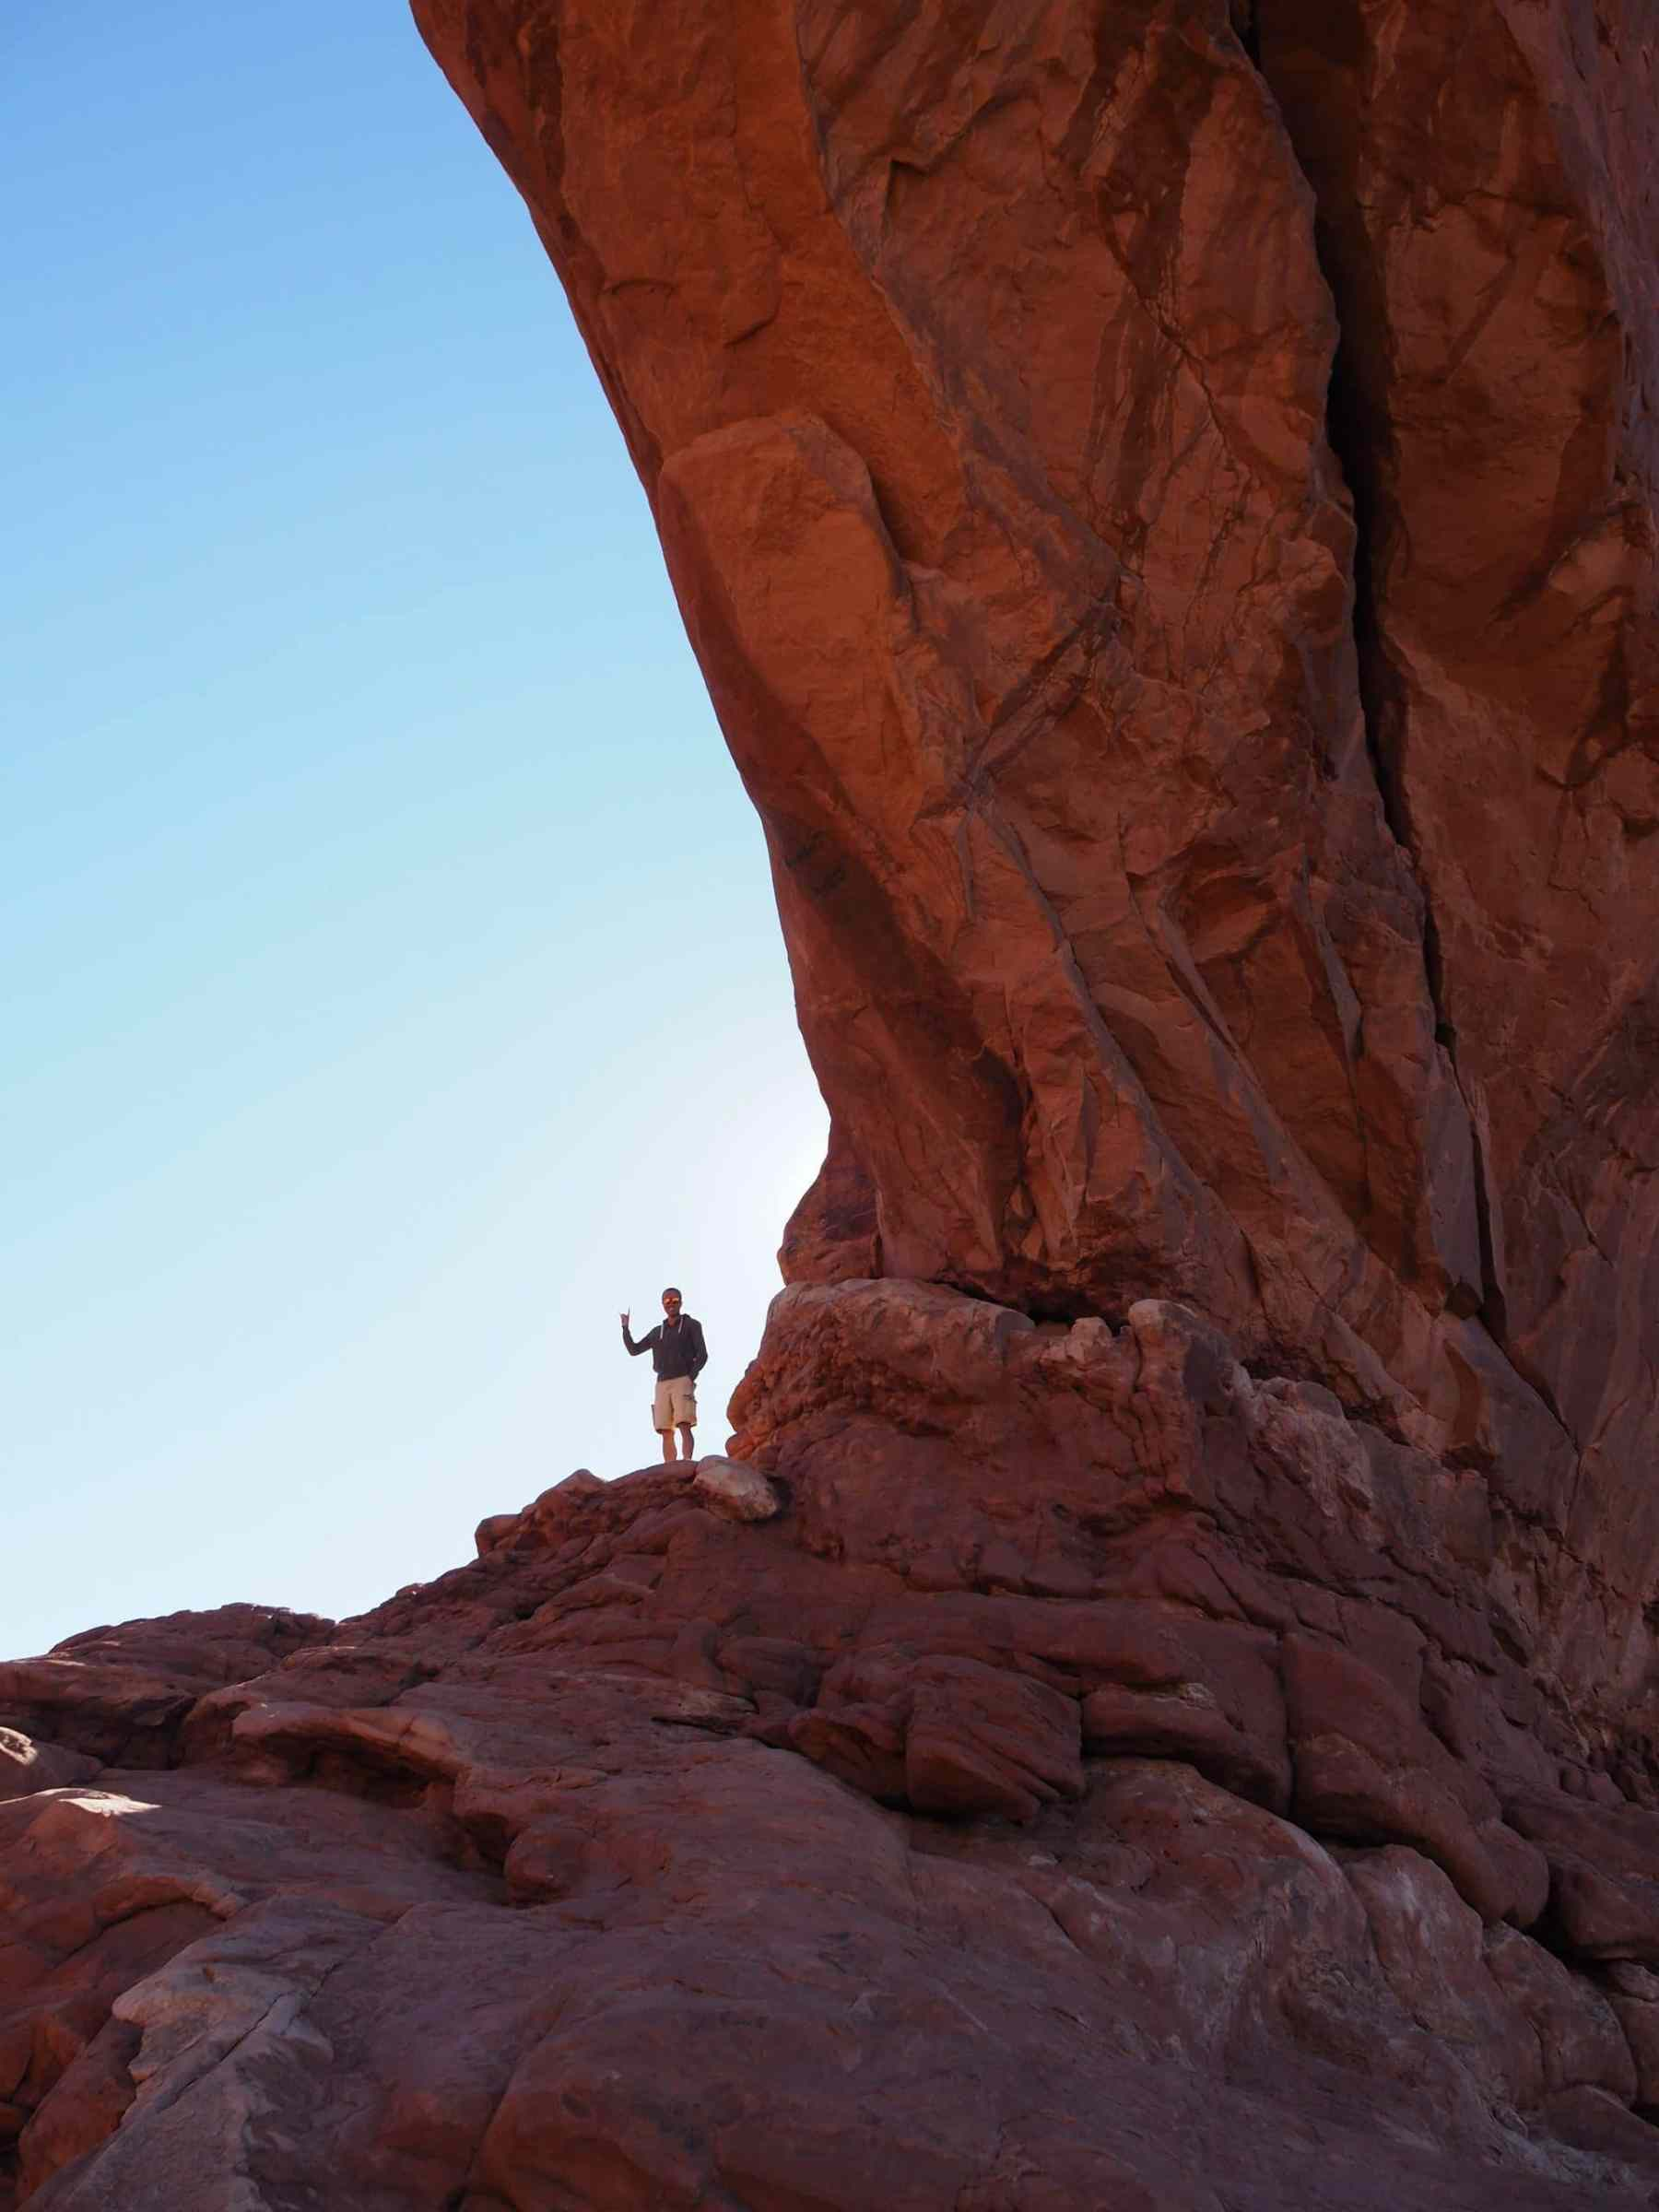 It's easy to feel small in Arches National Park